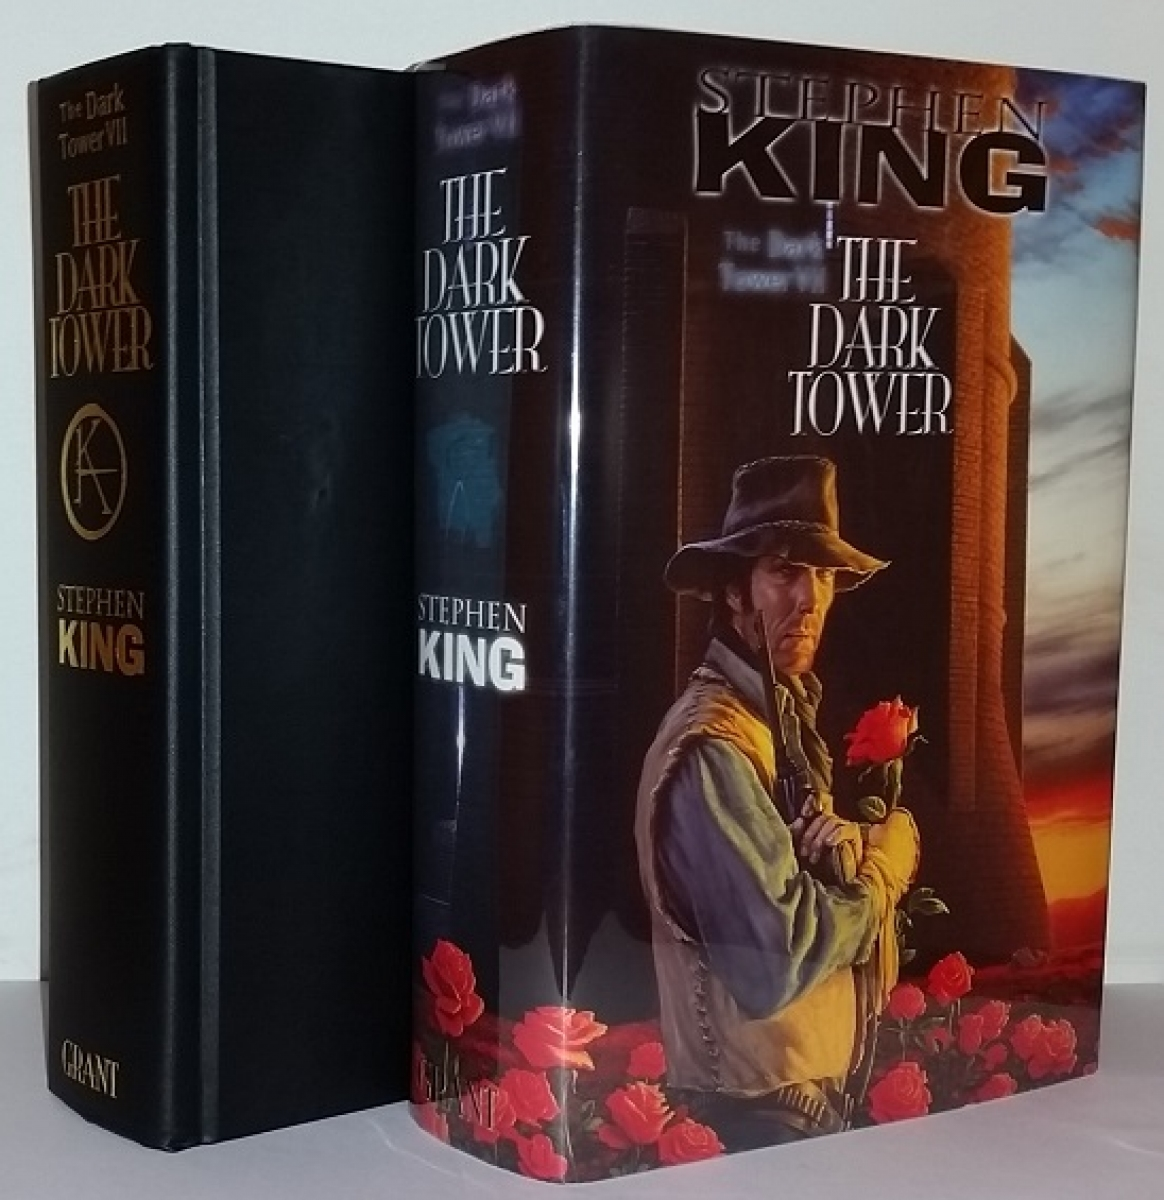 """The Dark Tower VII The Dark Tower"" - książka i obwoluta - obrazek"